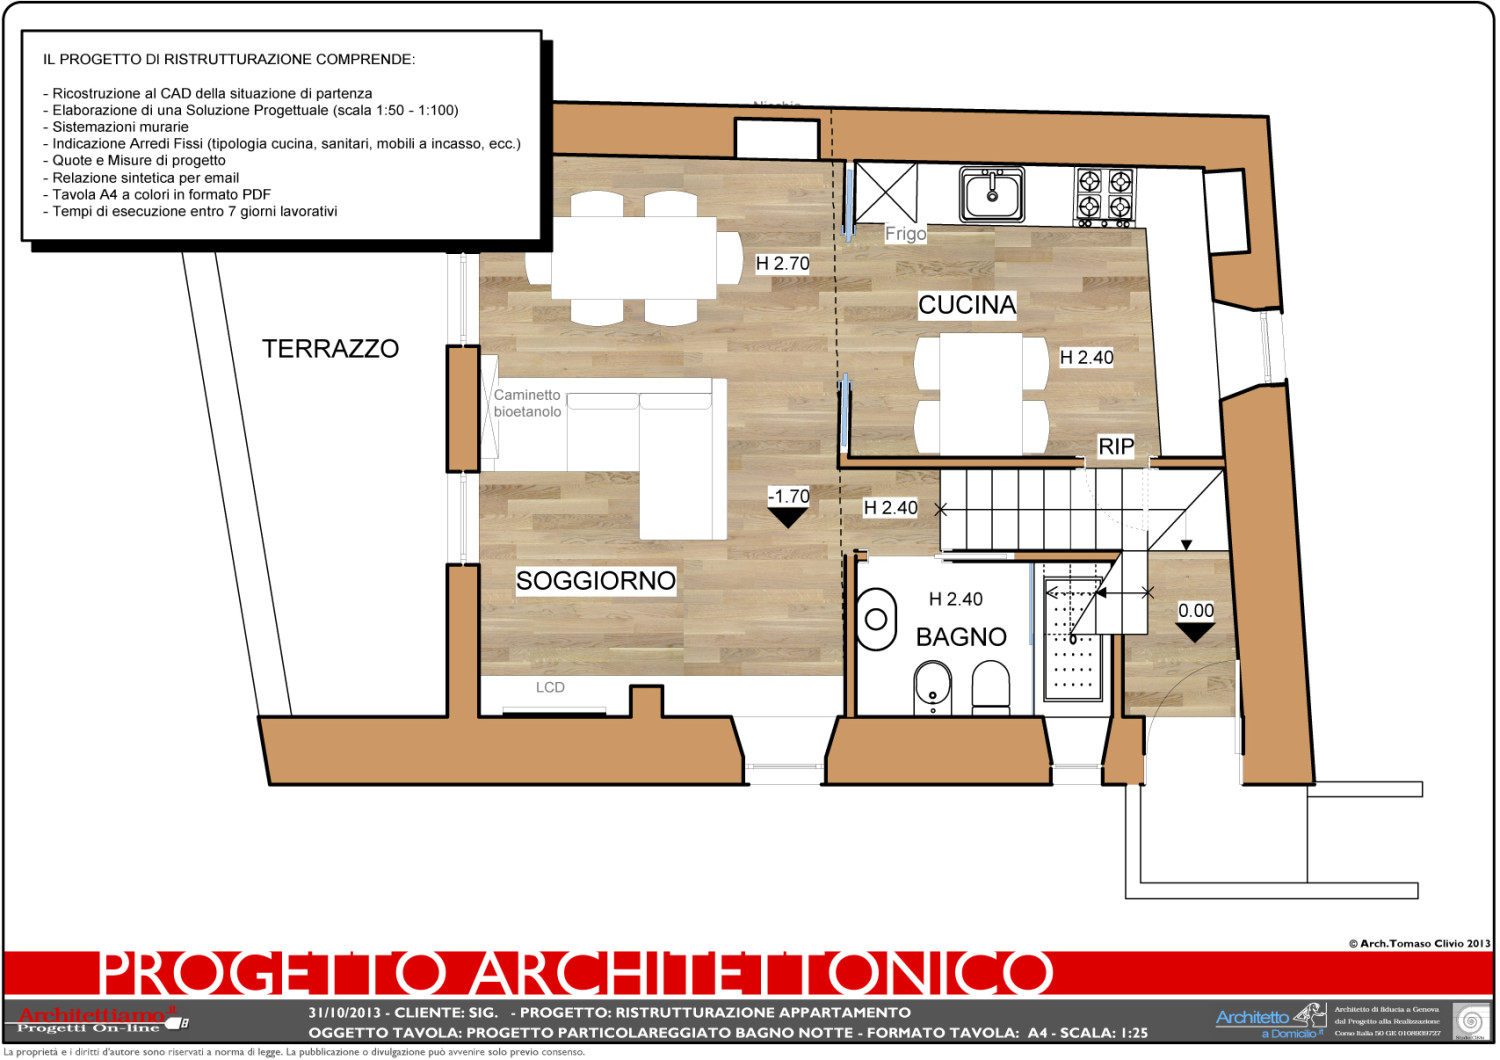 Disegnare piantina casa online for Disegnare cucina on line